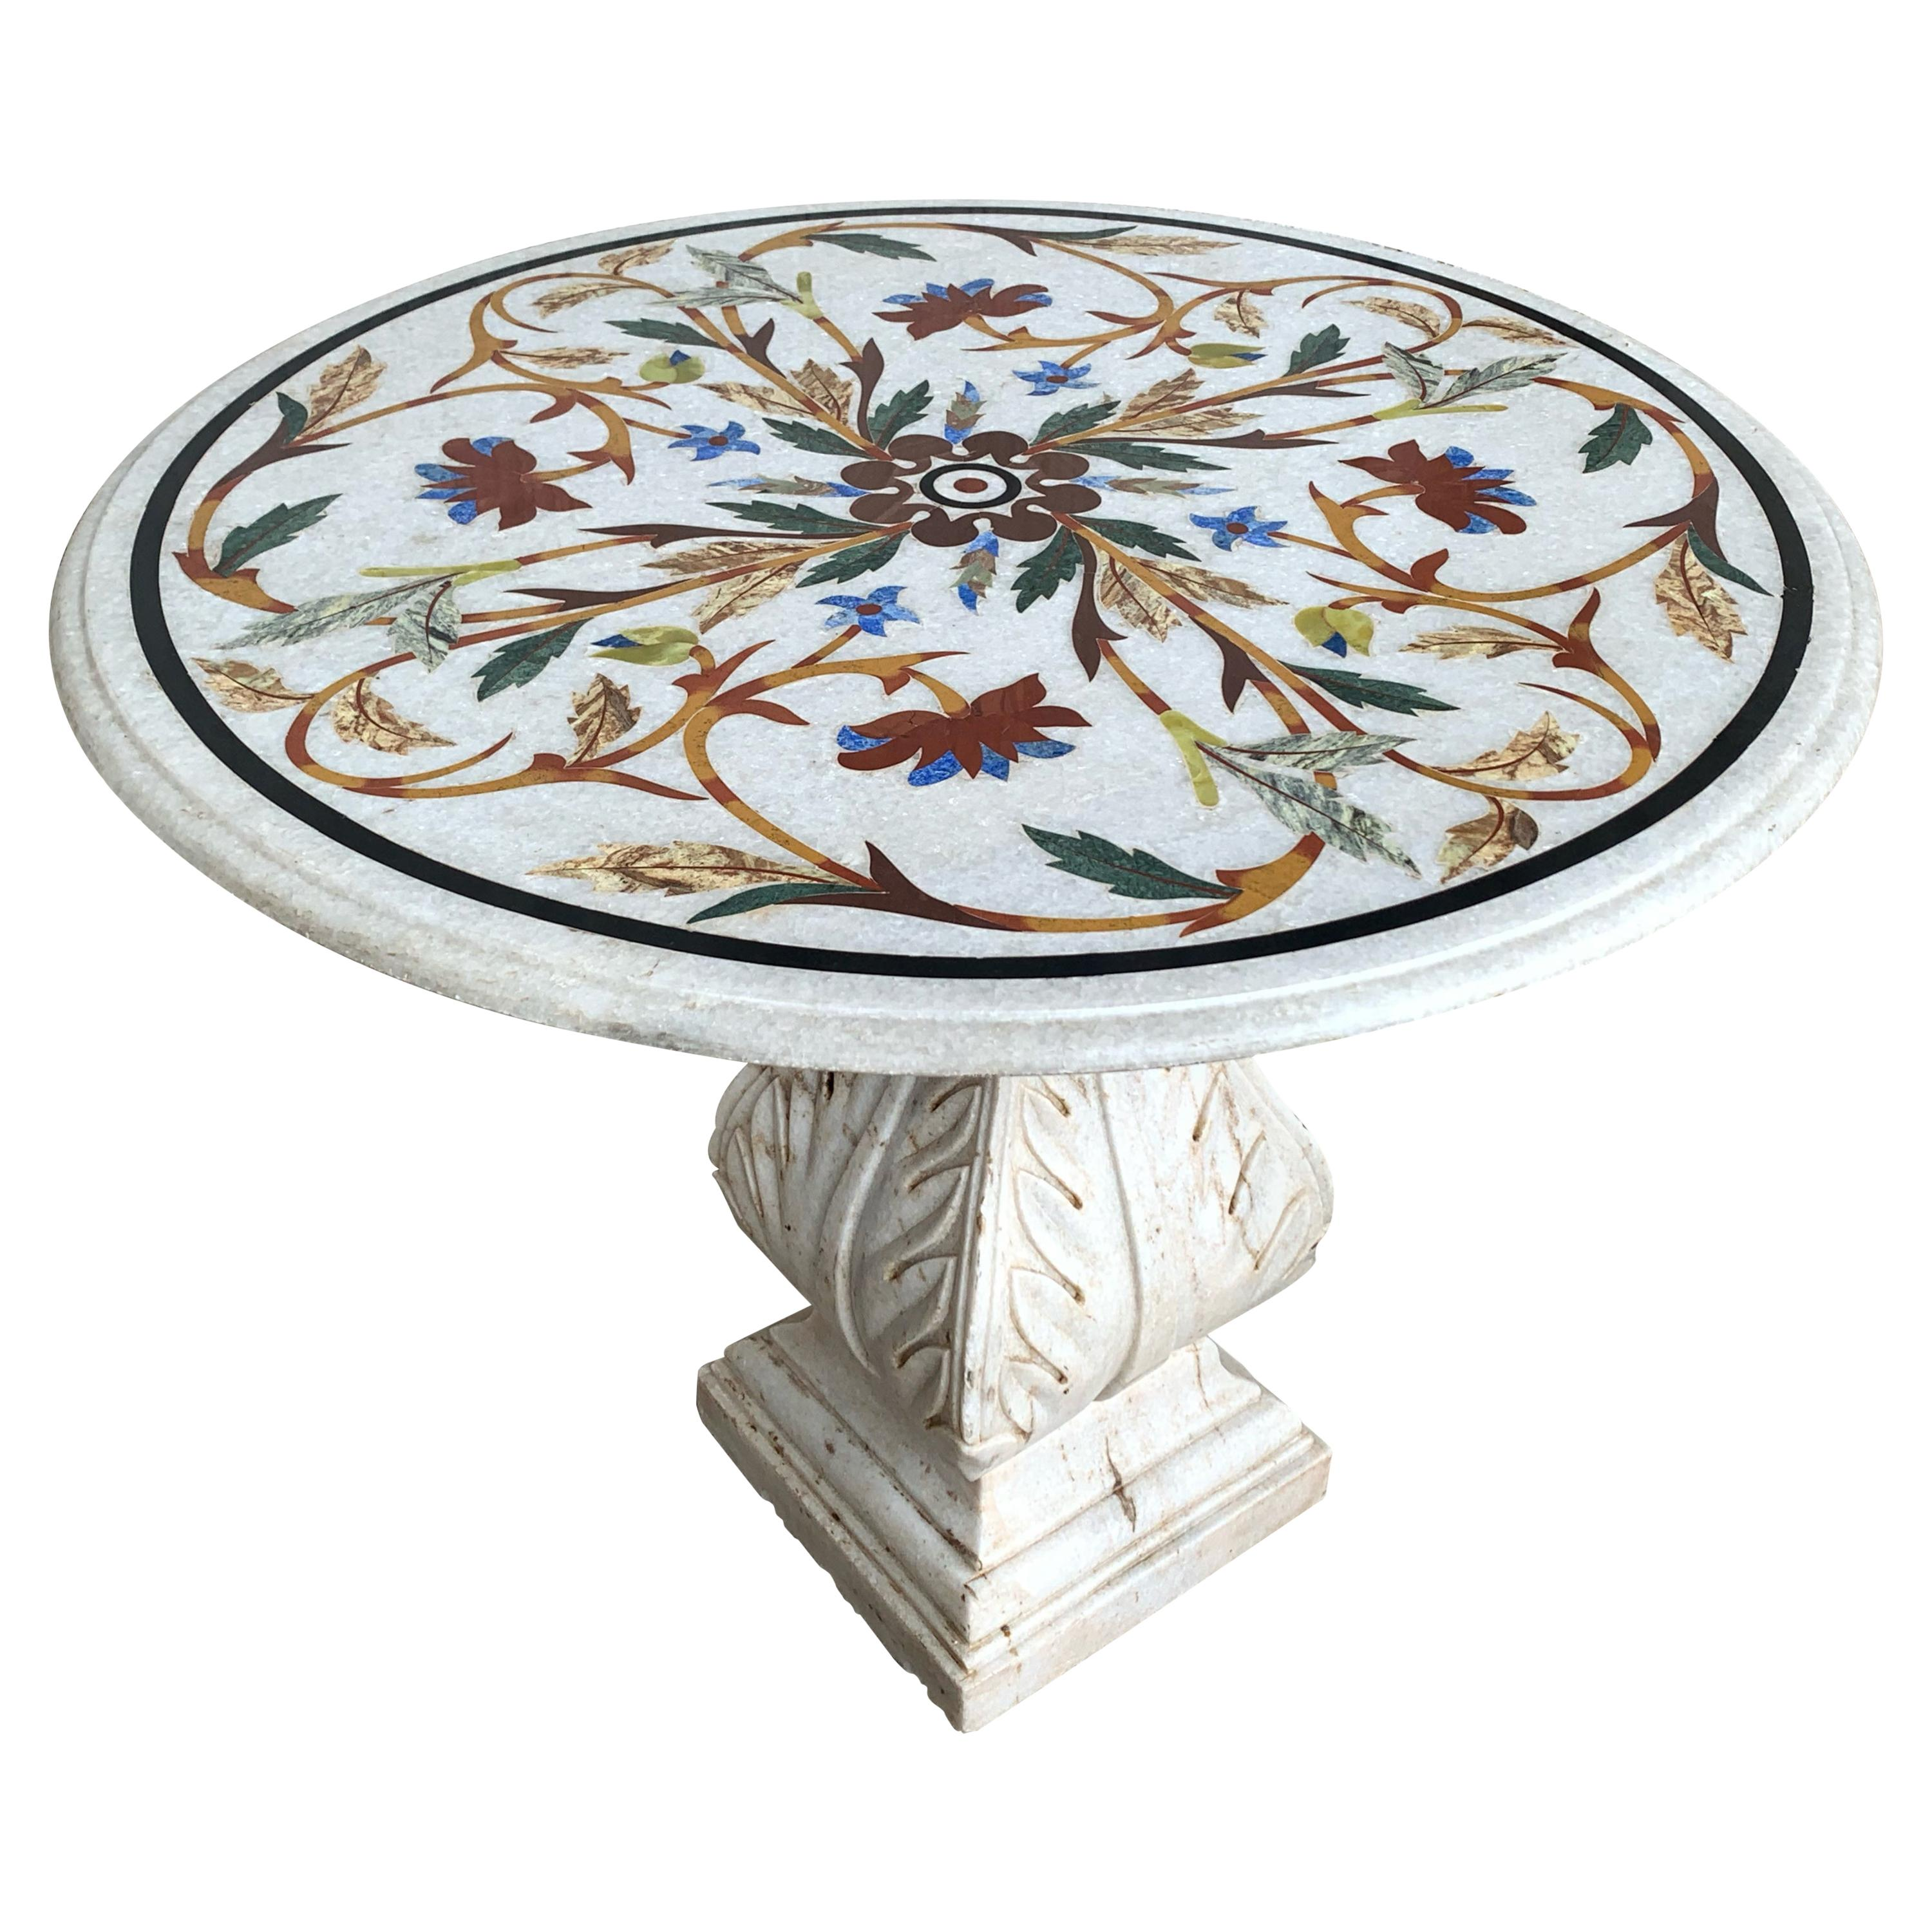 18th Century Italian Pietra Dura Marble-Top Table with Carved Carrara Pedestal